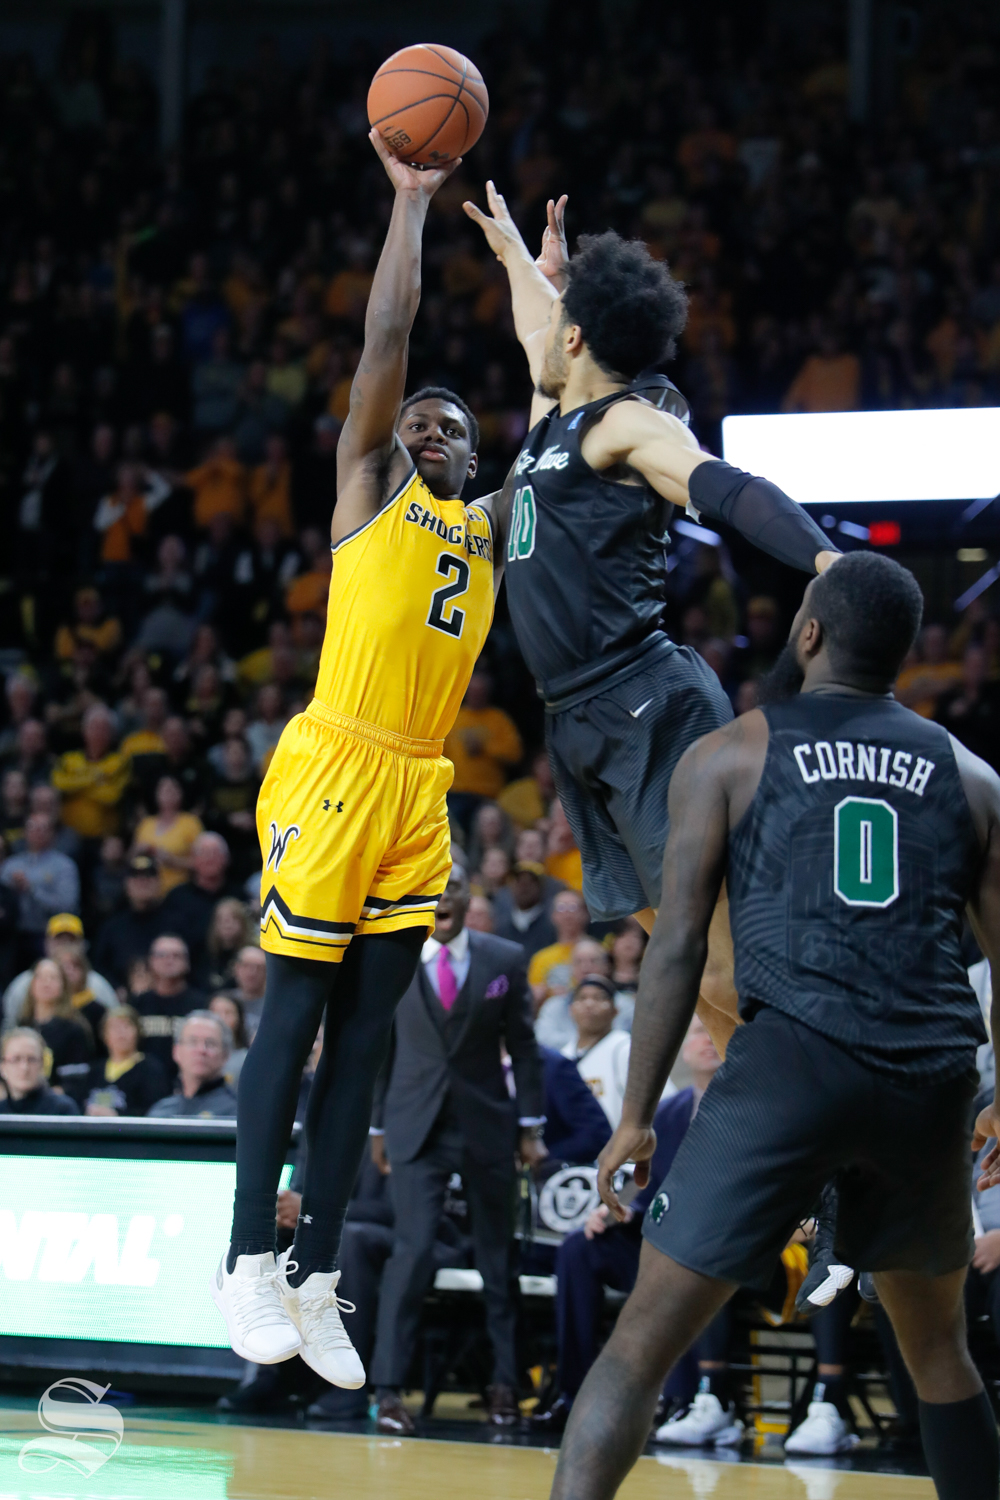 Wichita+State+guard+Jamarius+Burton+takes+a+shot+during+the+game+against+Tulane+on+Feb.+9%2C+2019+at+Charles+Koch+Arena.+Burton+had+9+points+in+the+win+over+Tulane.+%28Photo+by+Joseph+Barringhaus%2FThe+Sunflower%29.